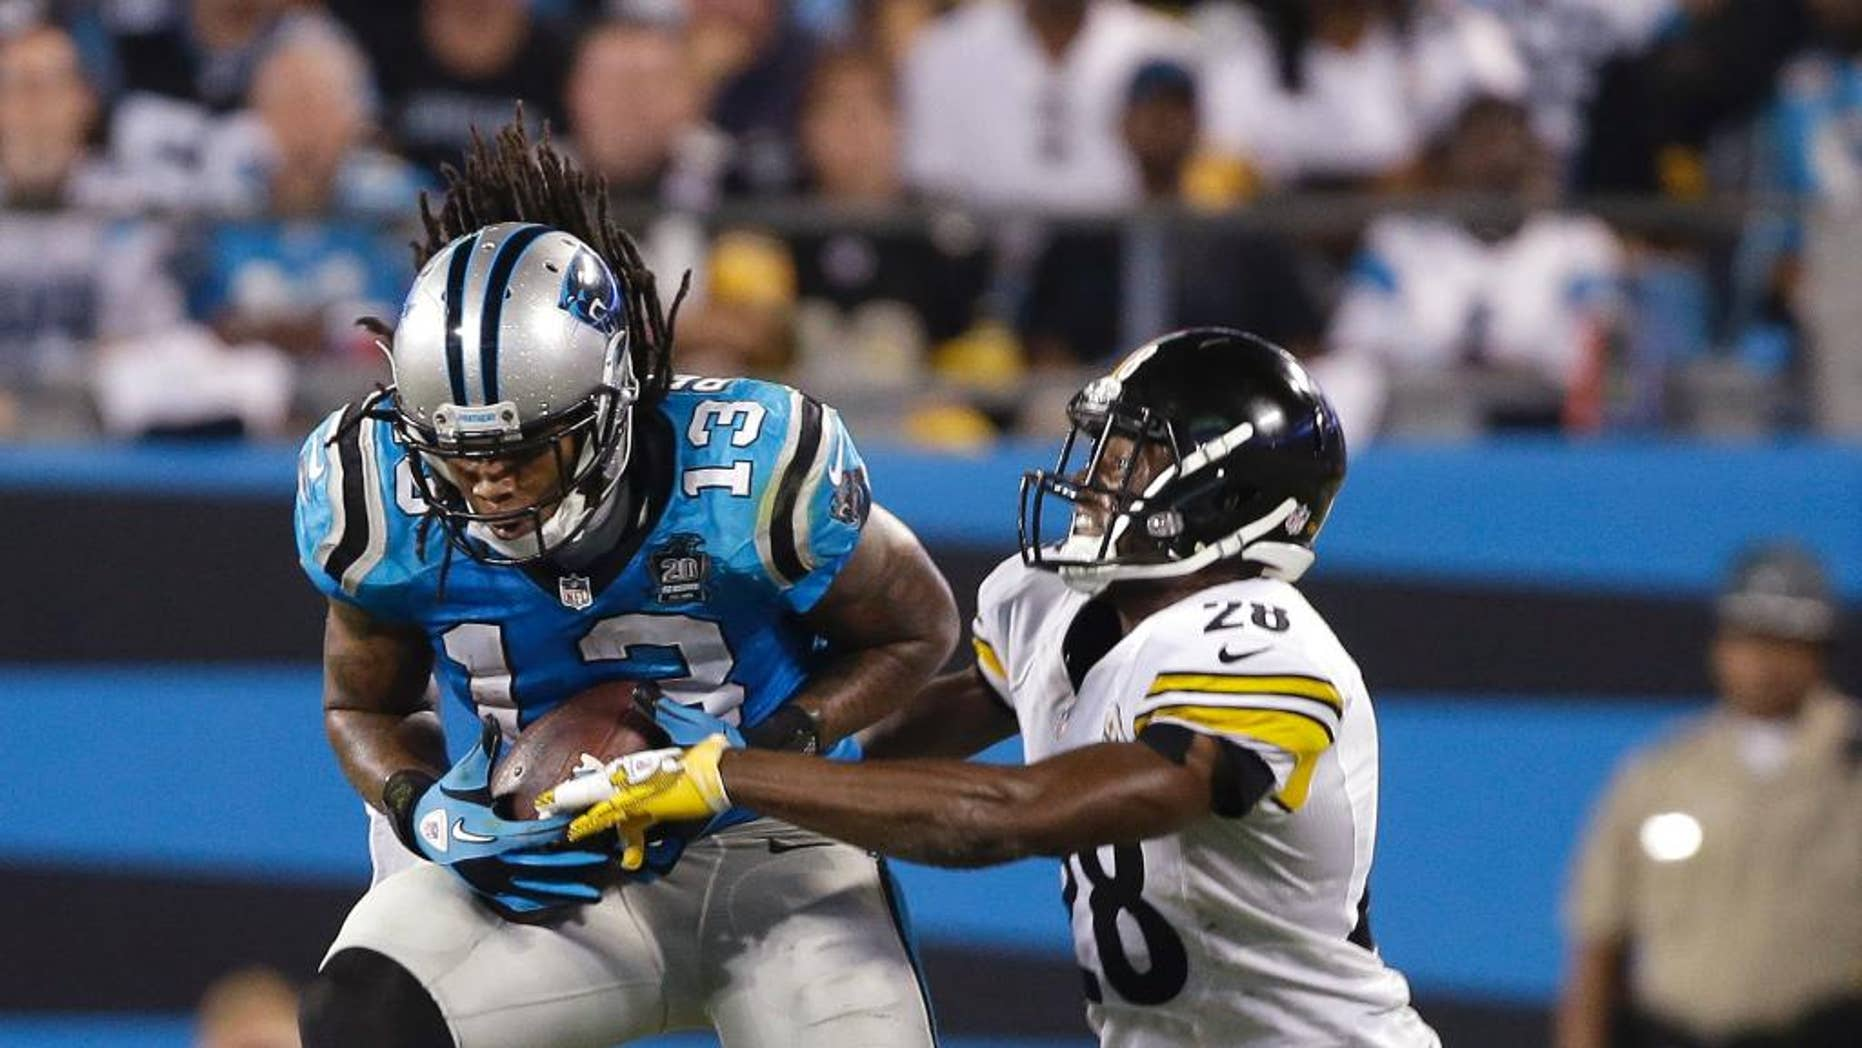 Carolina Panthers' Kelvin Benjamin (13) catches a pass as Pittsburgh Steelers' Cortez Allen (28) defends during the second half of an NFL football game in Charlotte, N.C., Sunday, Sept. 21, 2014. (AP Photo/Bob Leverone)